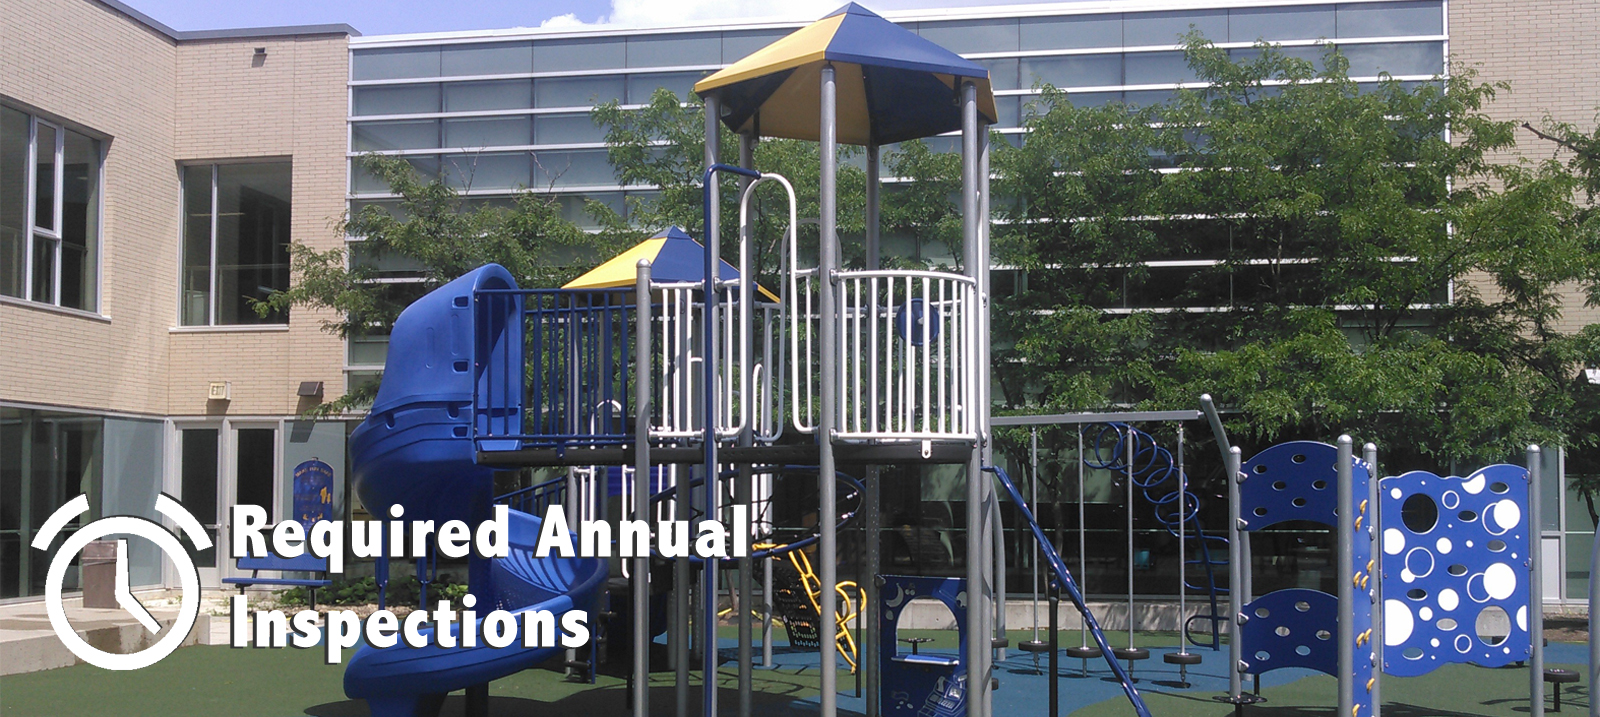 Playground Inspections